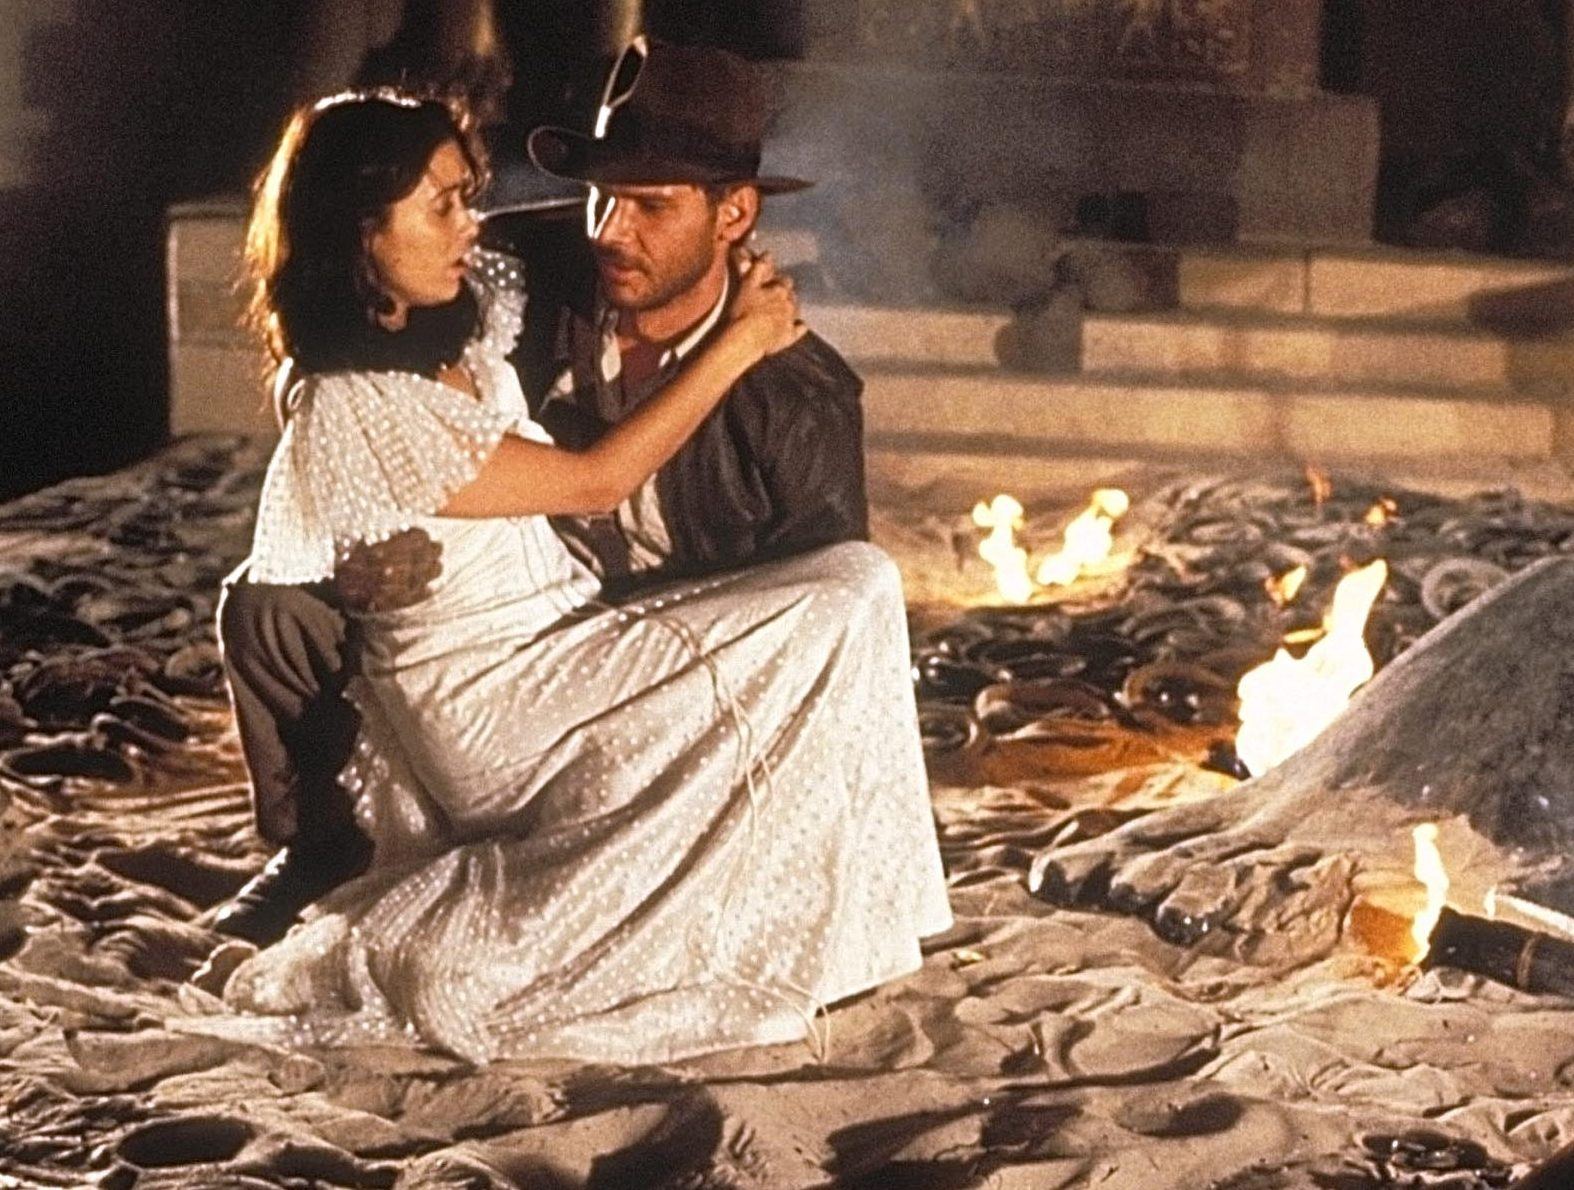 raiders of the lost ark indy marion snakes e1623318721301 Karen Allen Speaks Out On Indiana Jones' Controversial Marion Seduction